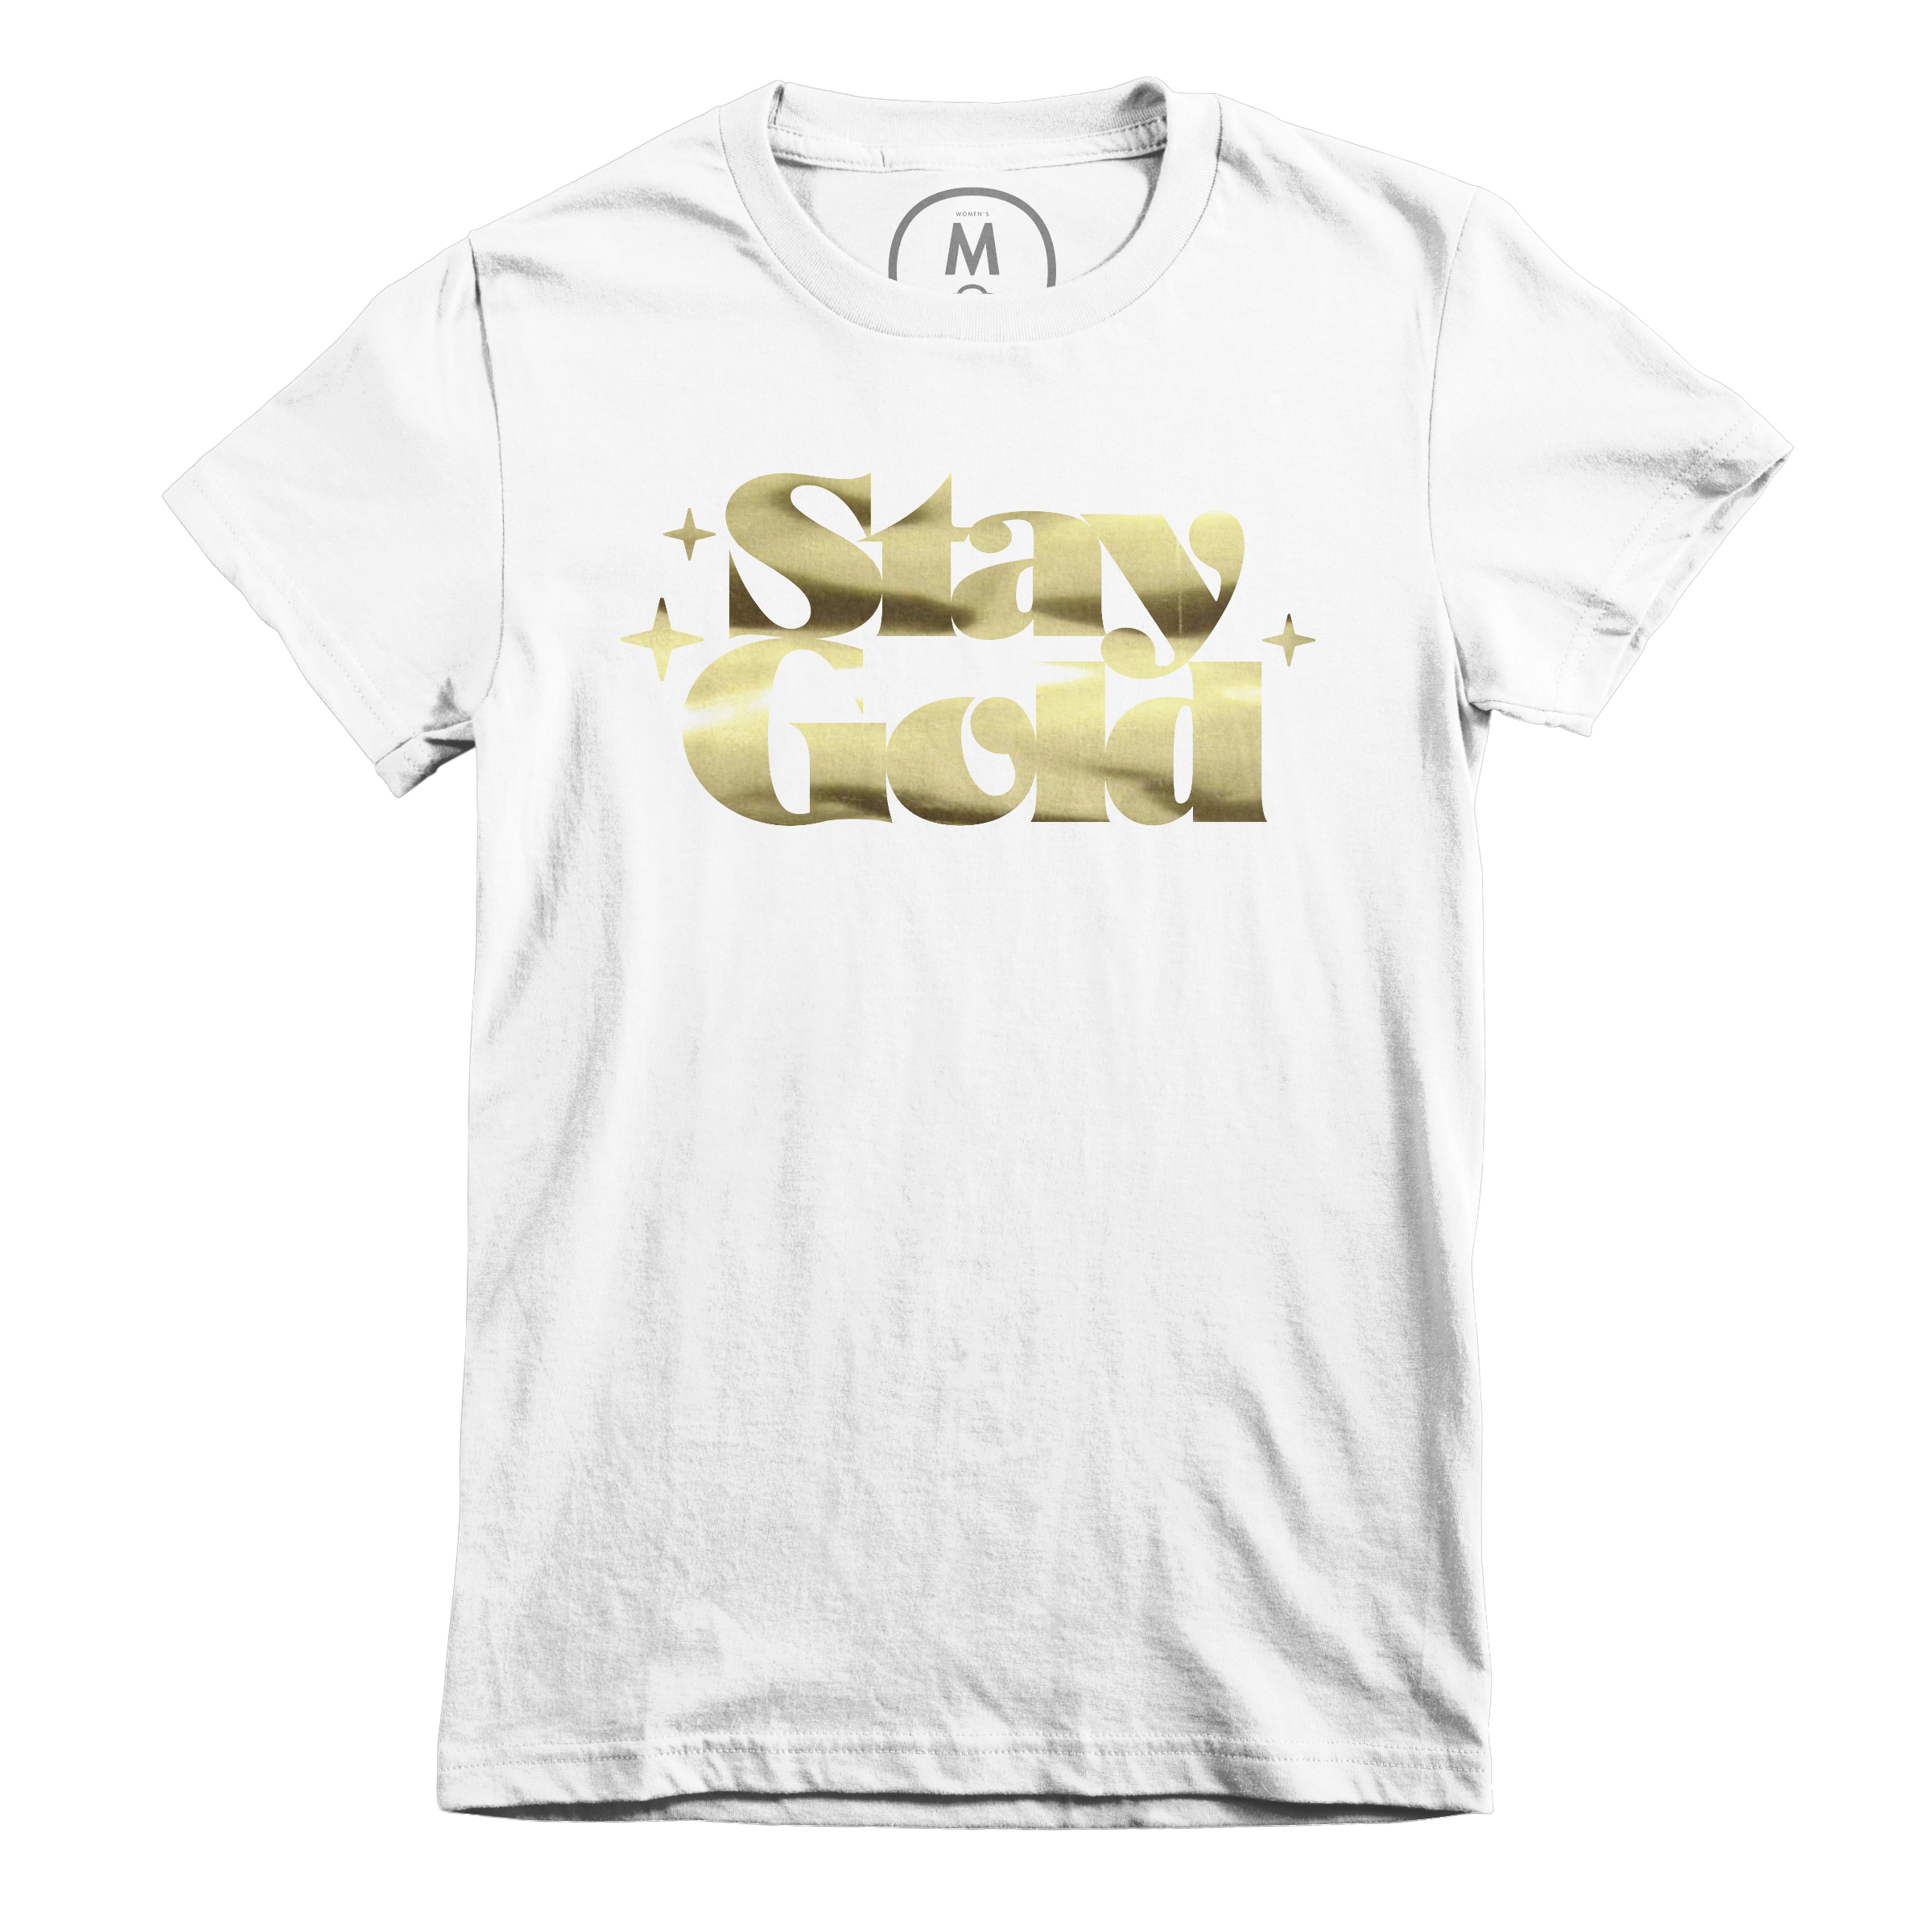 Stay Gold White (Women's)